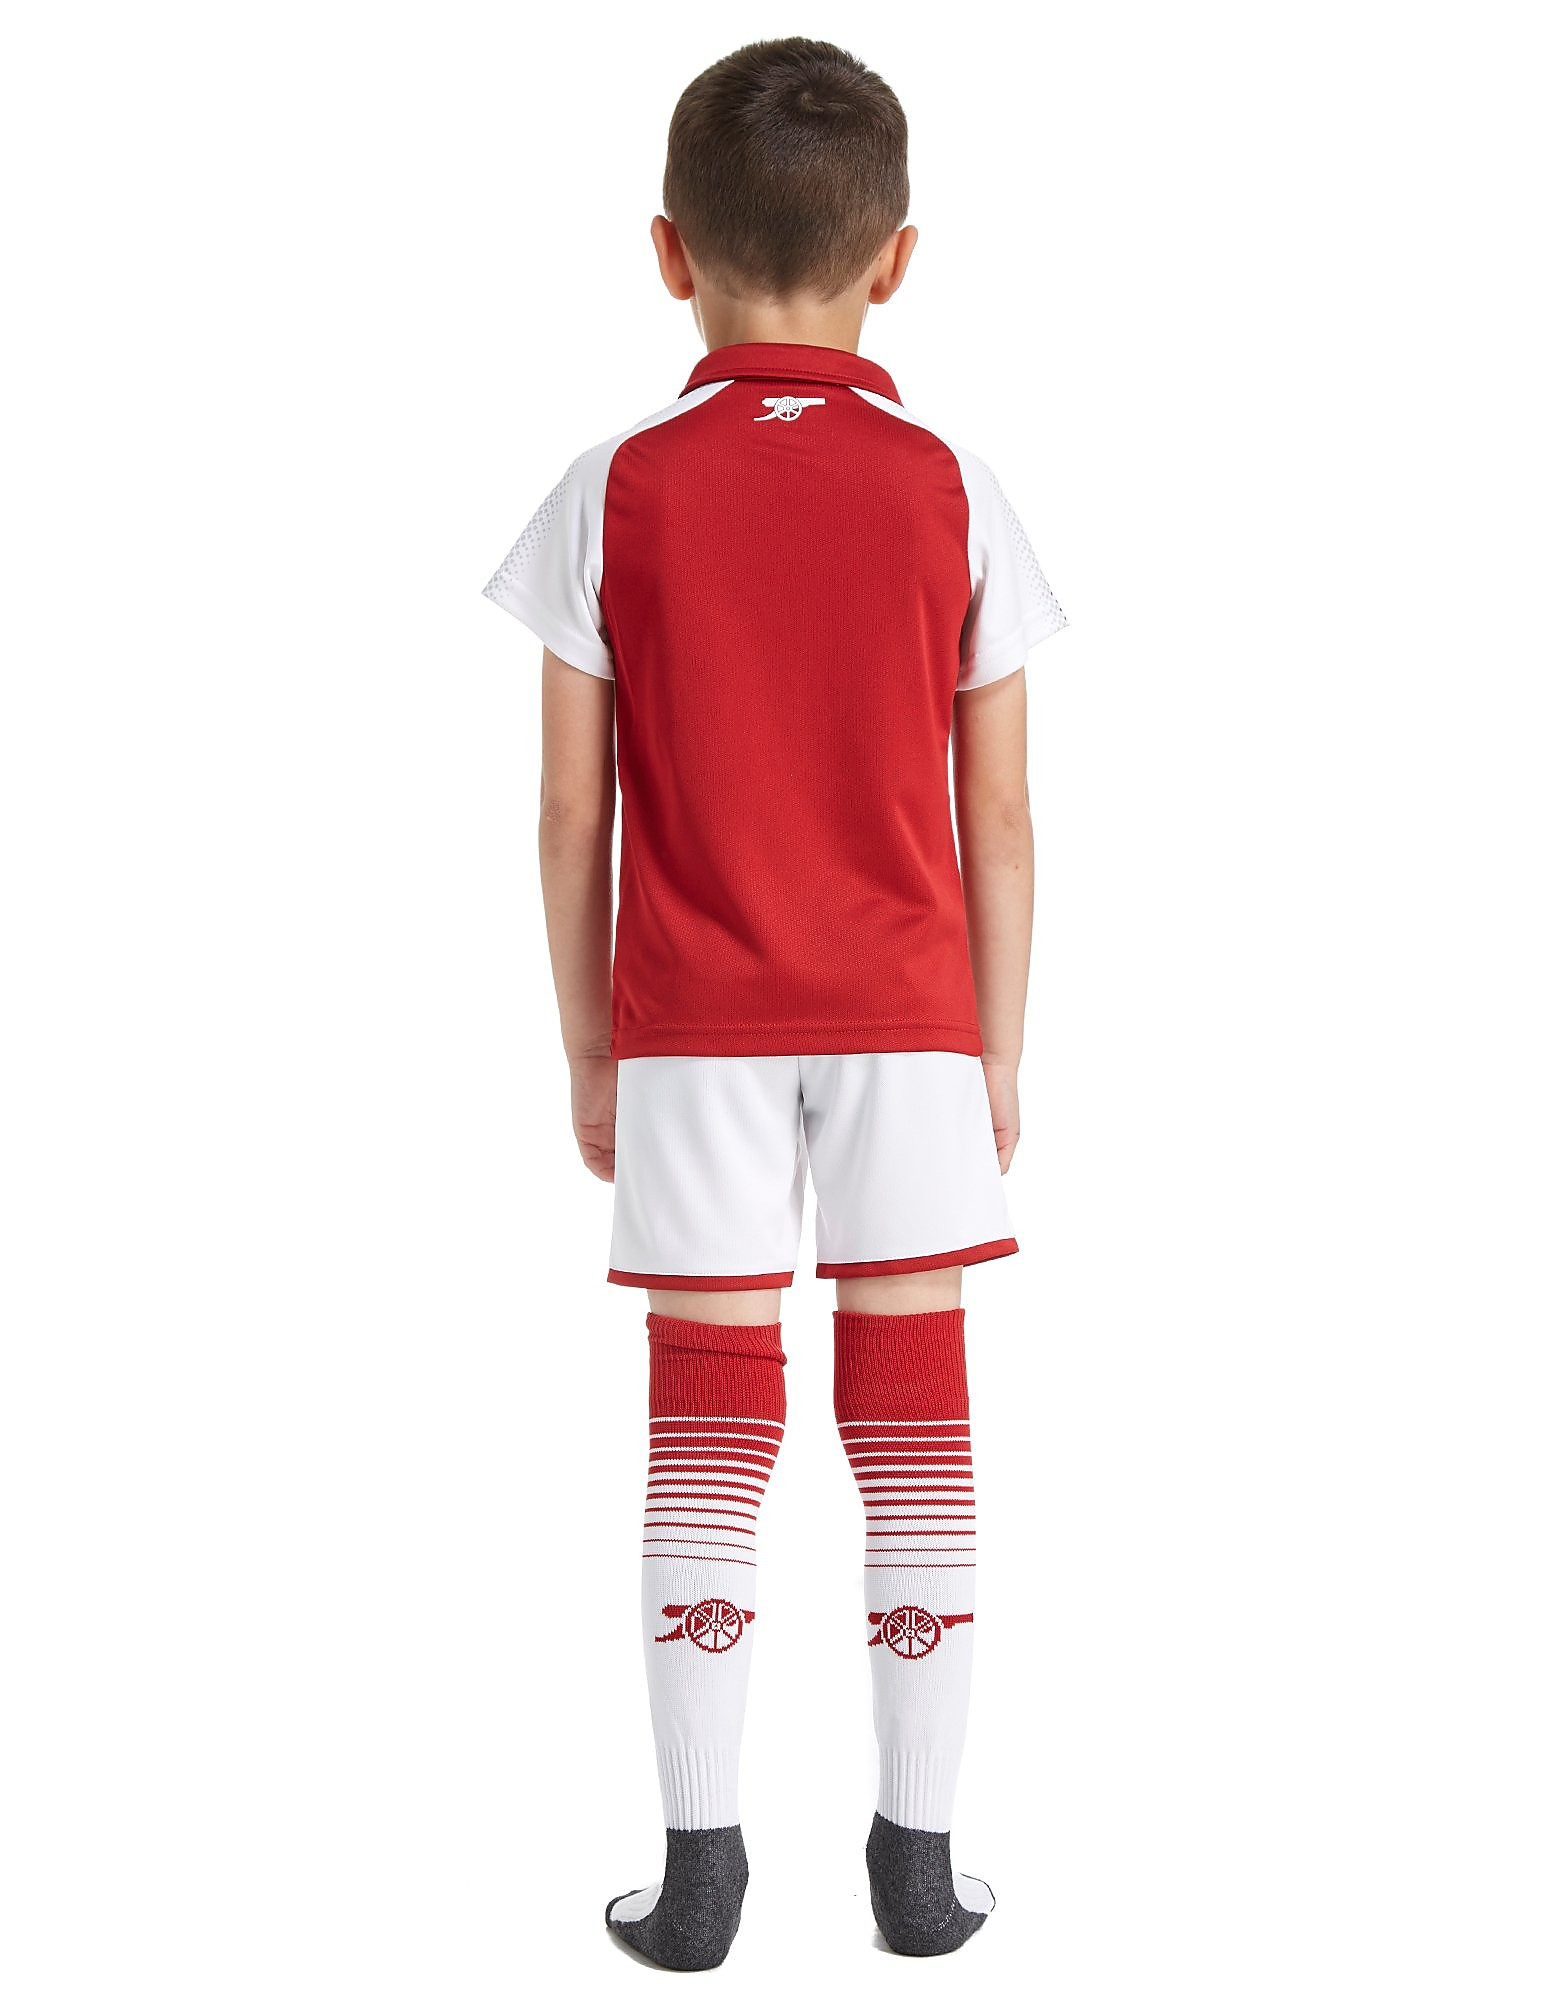 PUMA Arsenal FC 2017/18 Home Kit Children